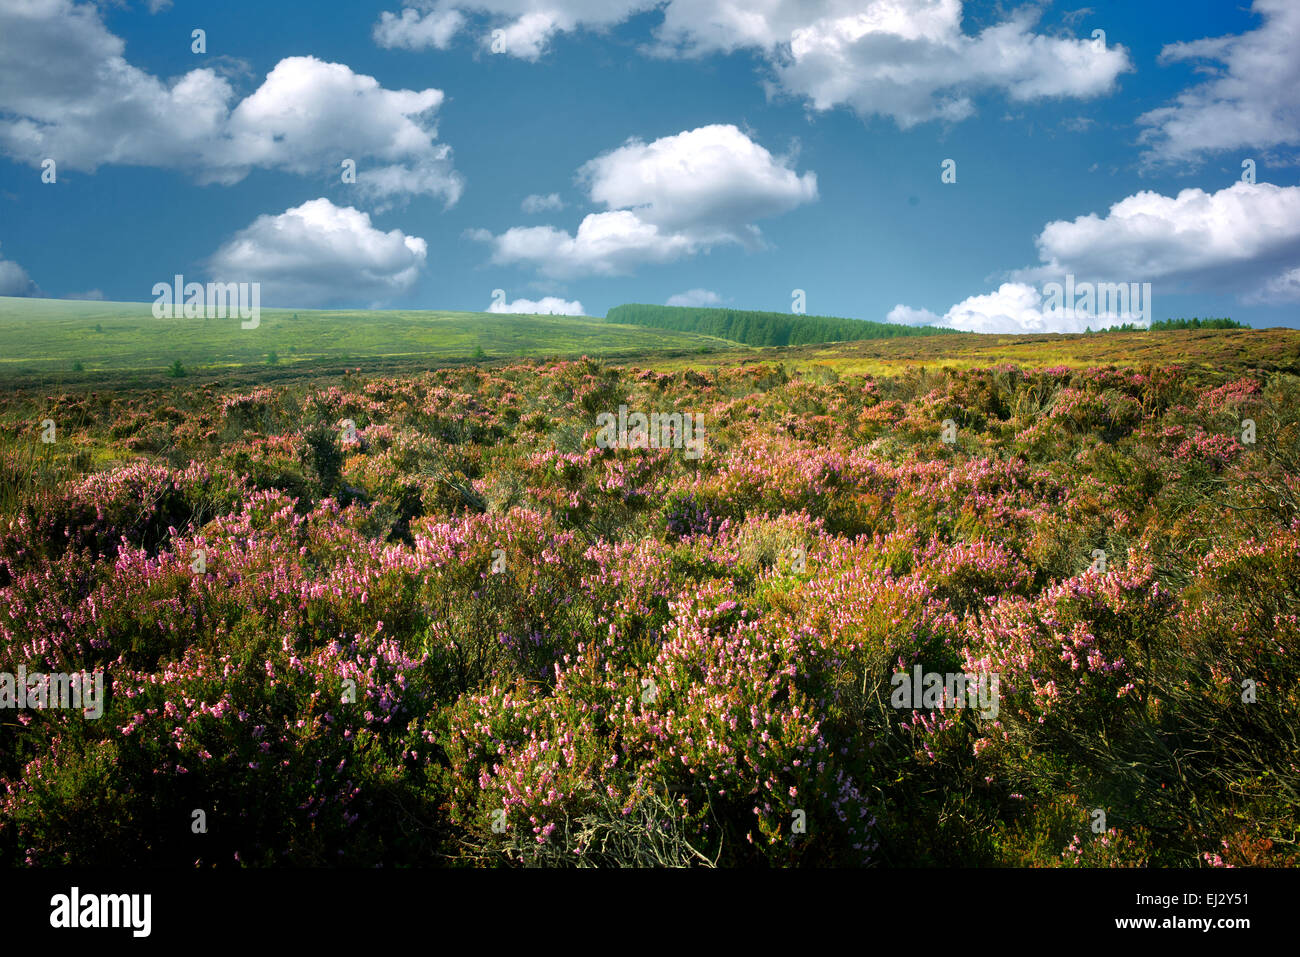 Wild heather near Ballycastle. Northern Ireland - Stock Image